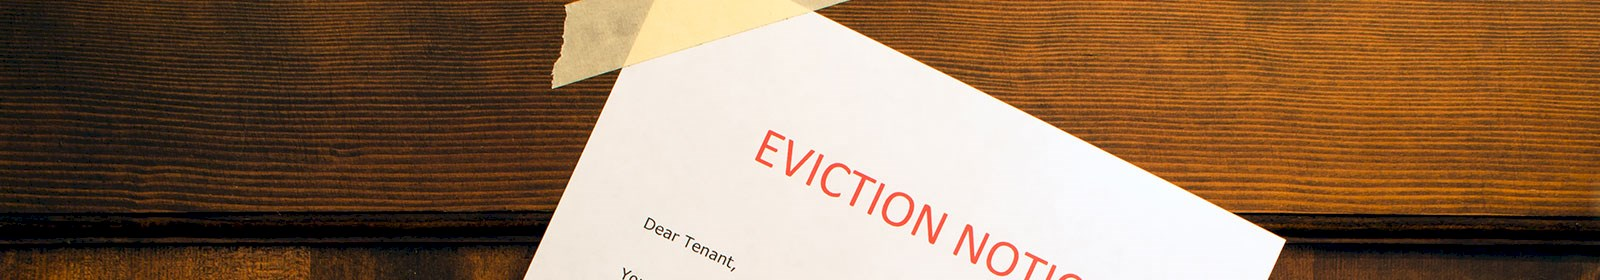 Evicting squatters off private property is costly and time-consuming